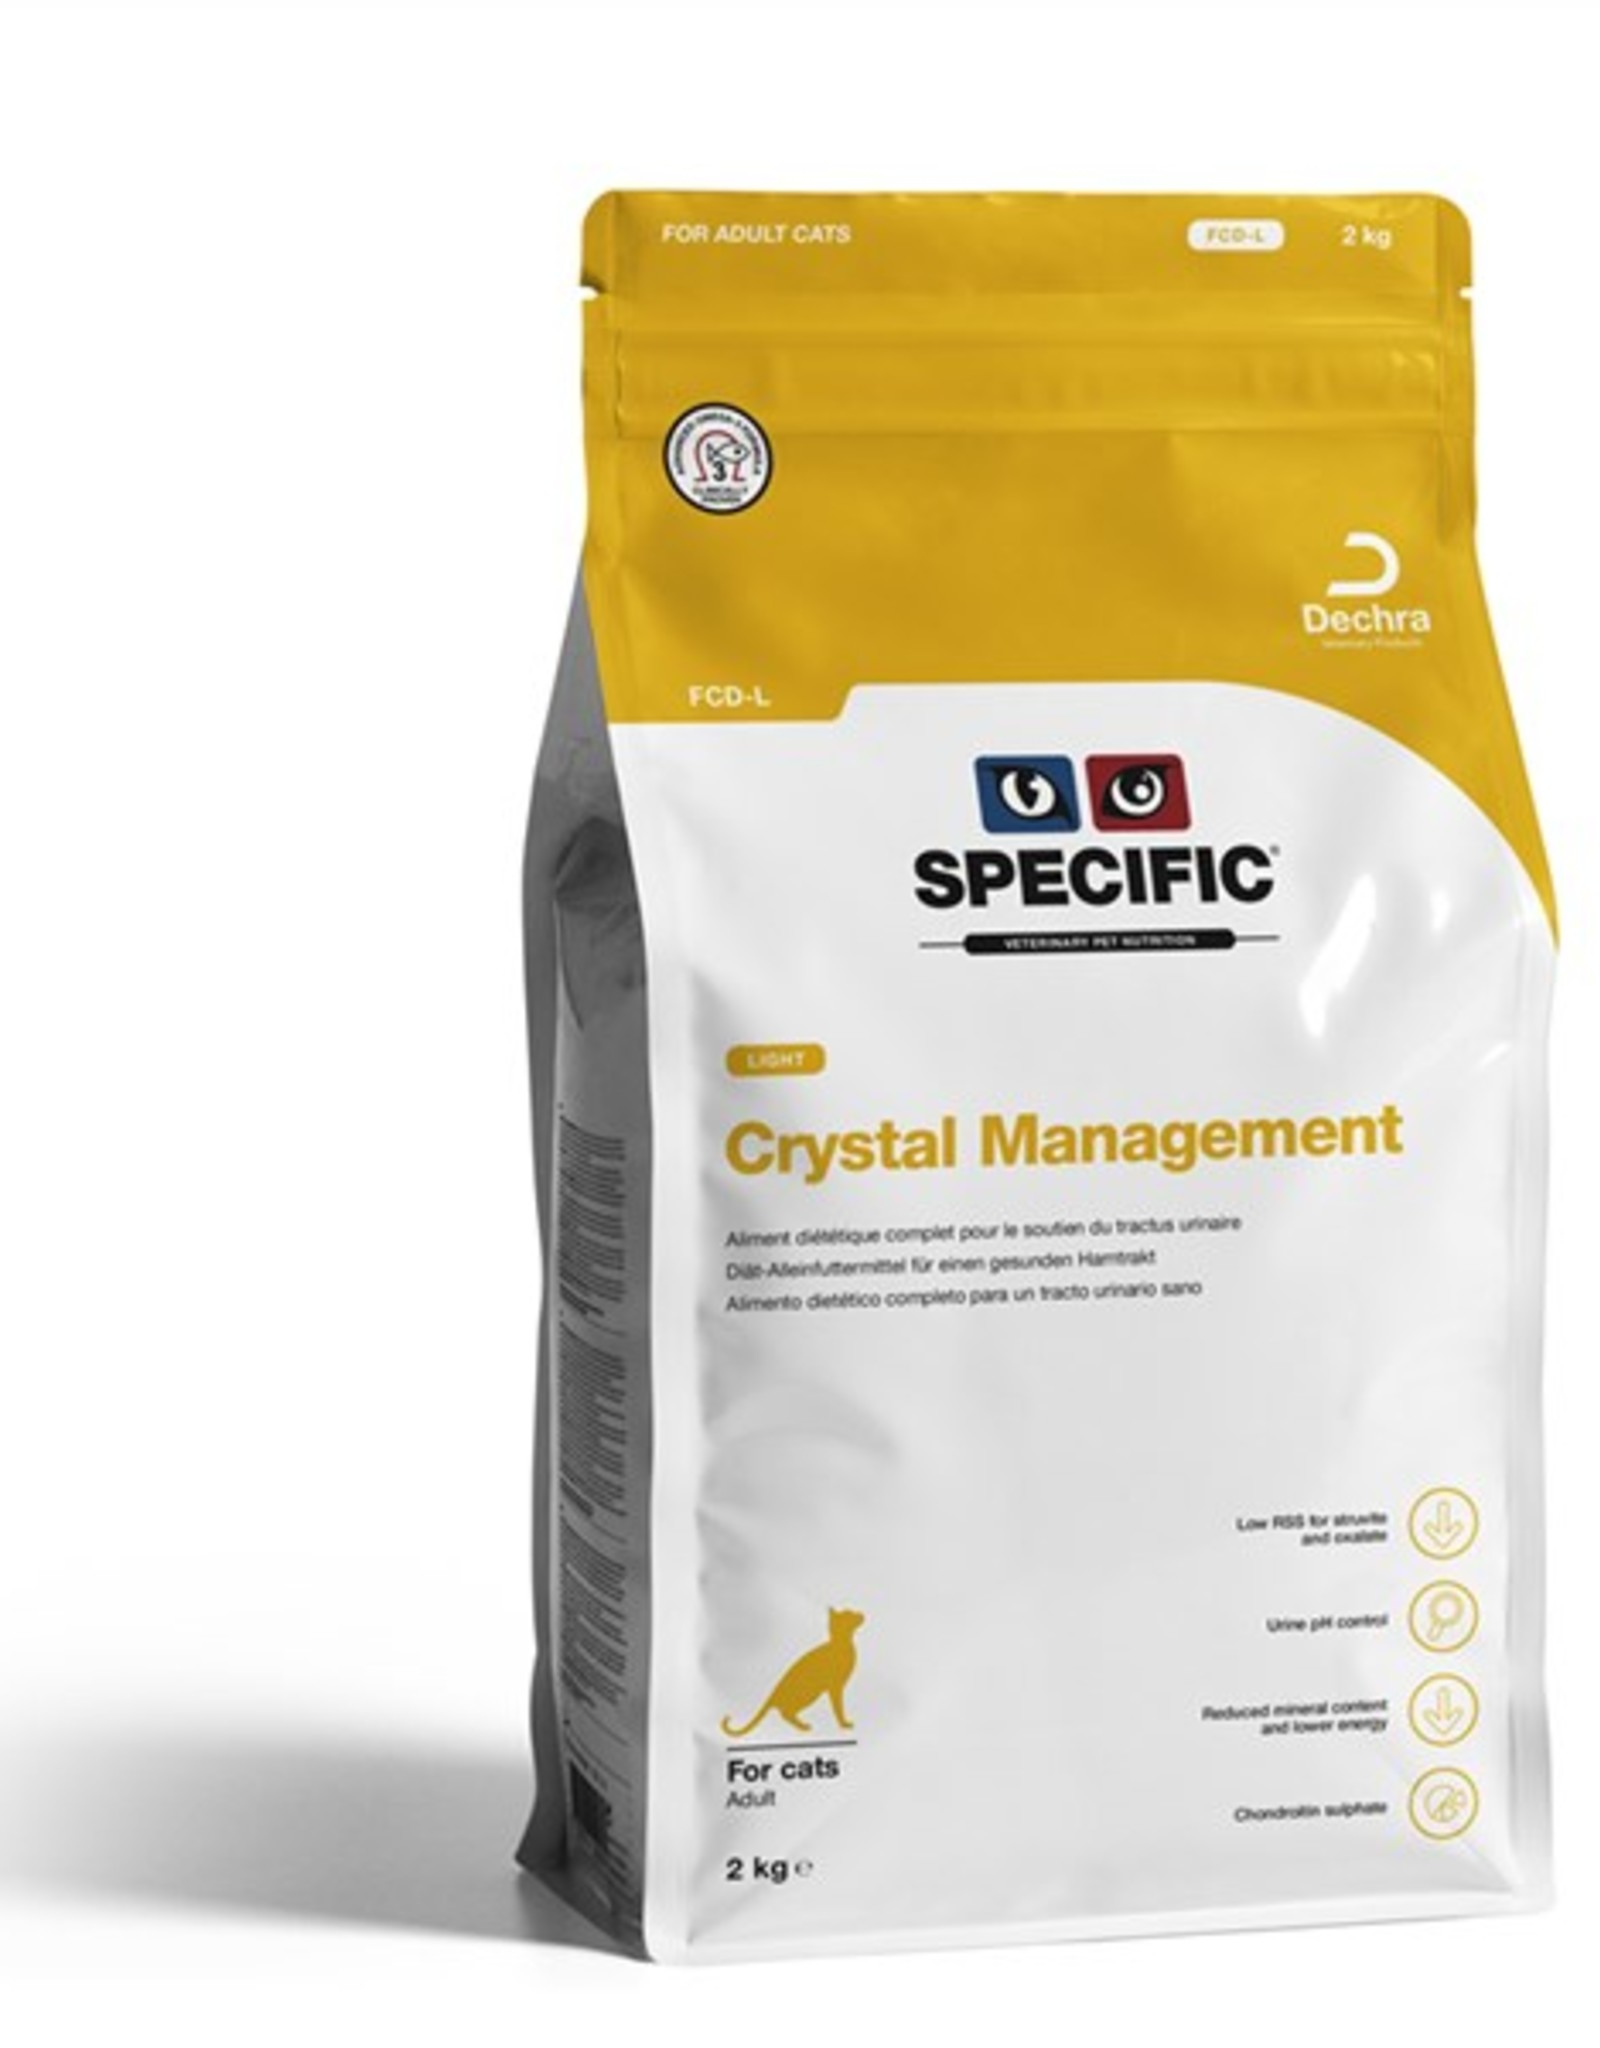 Specific Specific Fcd-l Crystal Management Light Chat 2kg